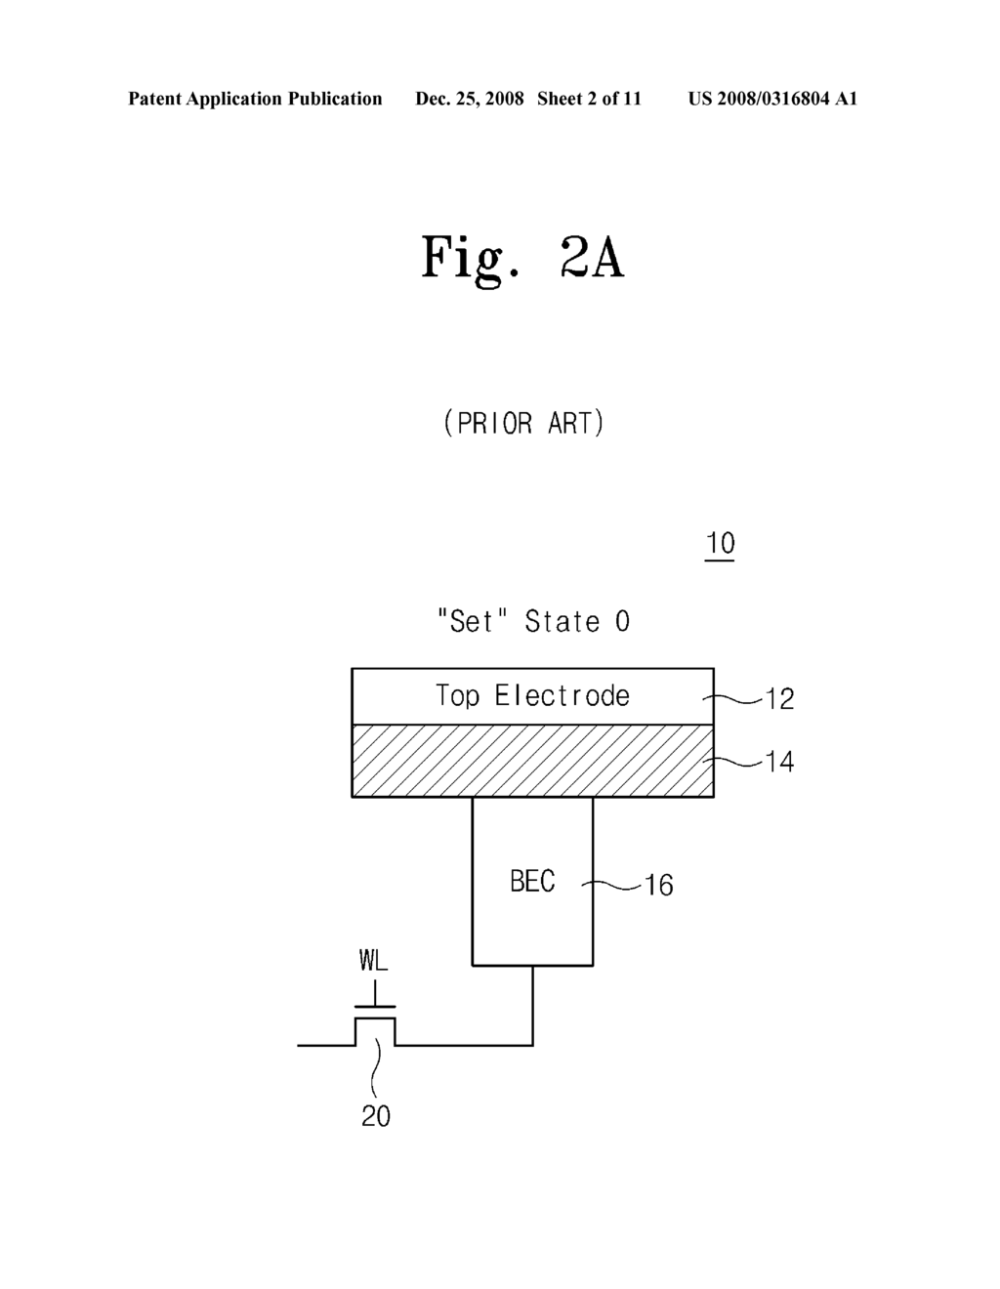 medium resolution of multiple level cell phase change memory devices having controlled resistance drift parameter memory systems employing such devices and methods of reading